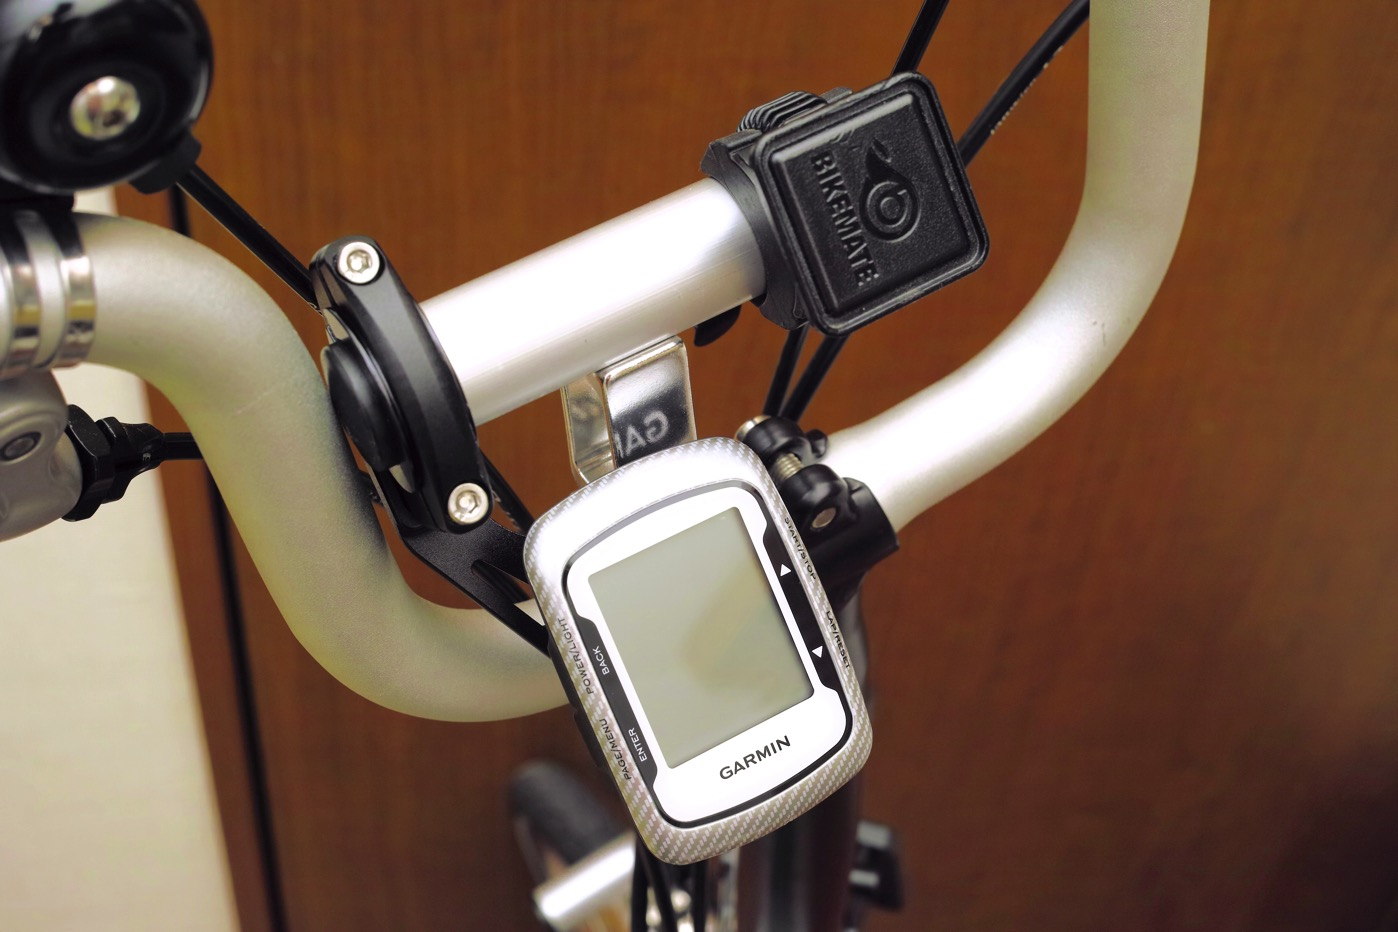 Pwt garmin edge out front mount 00008